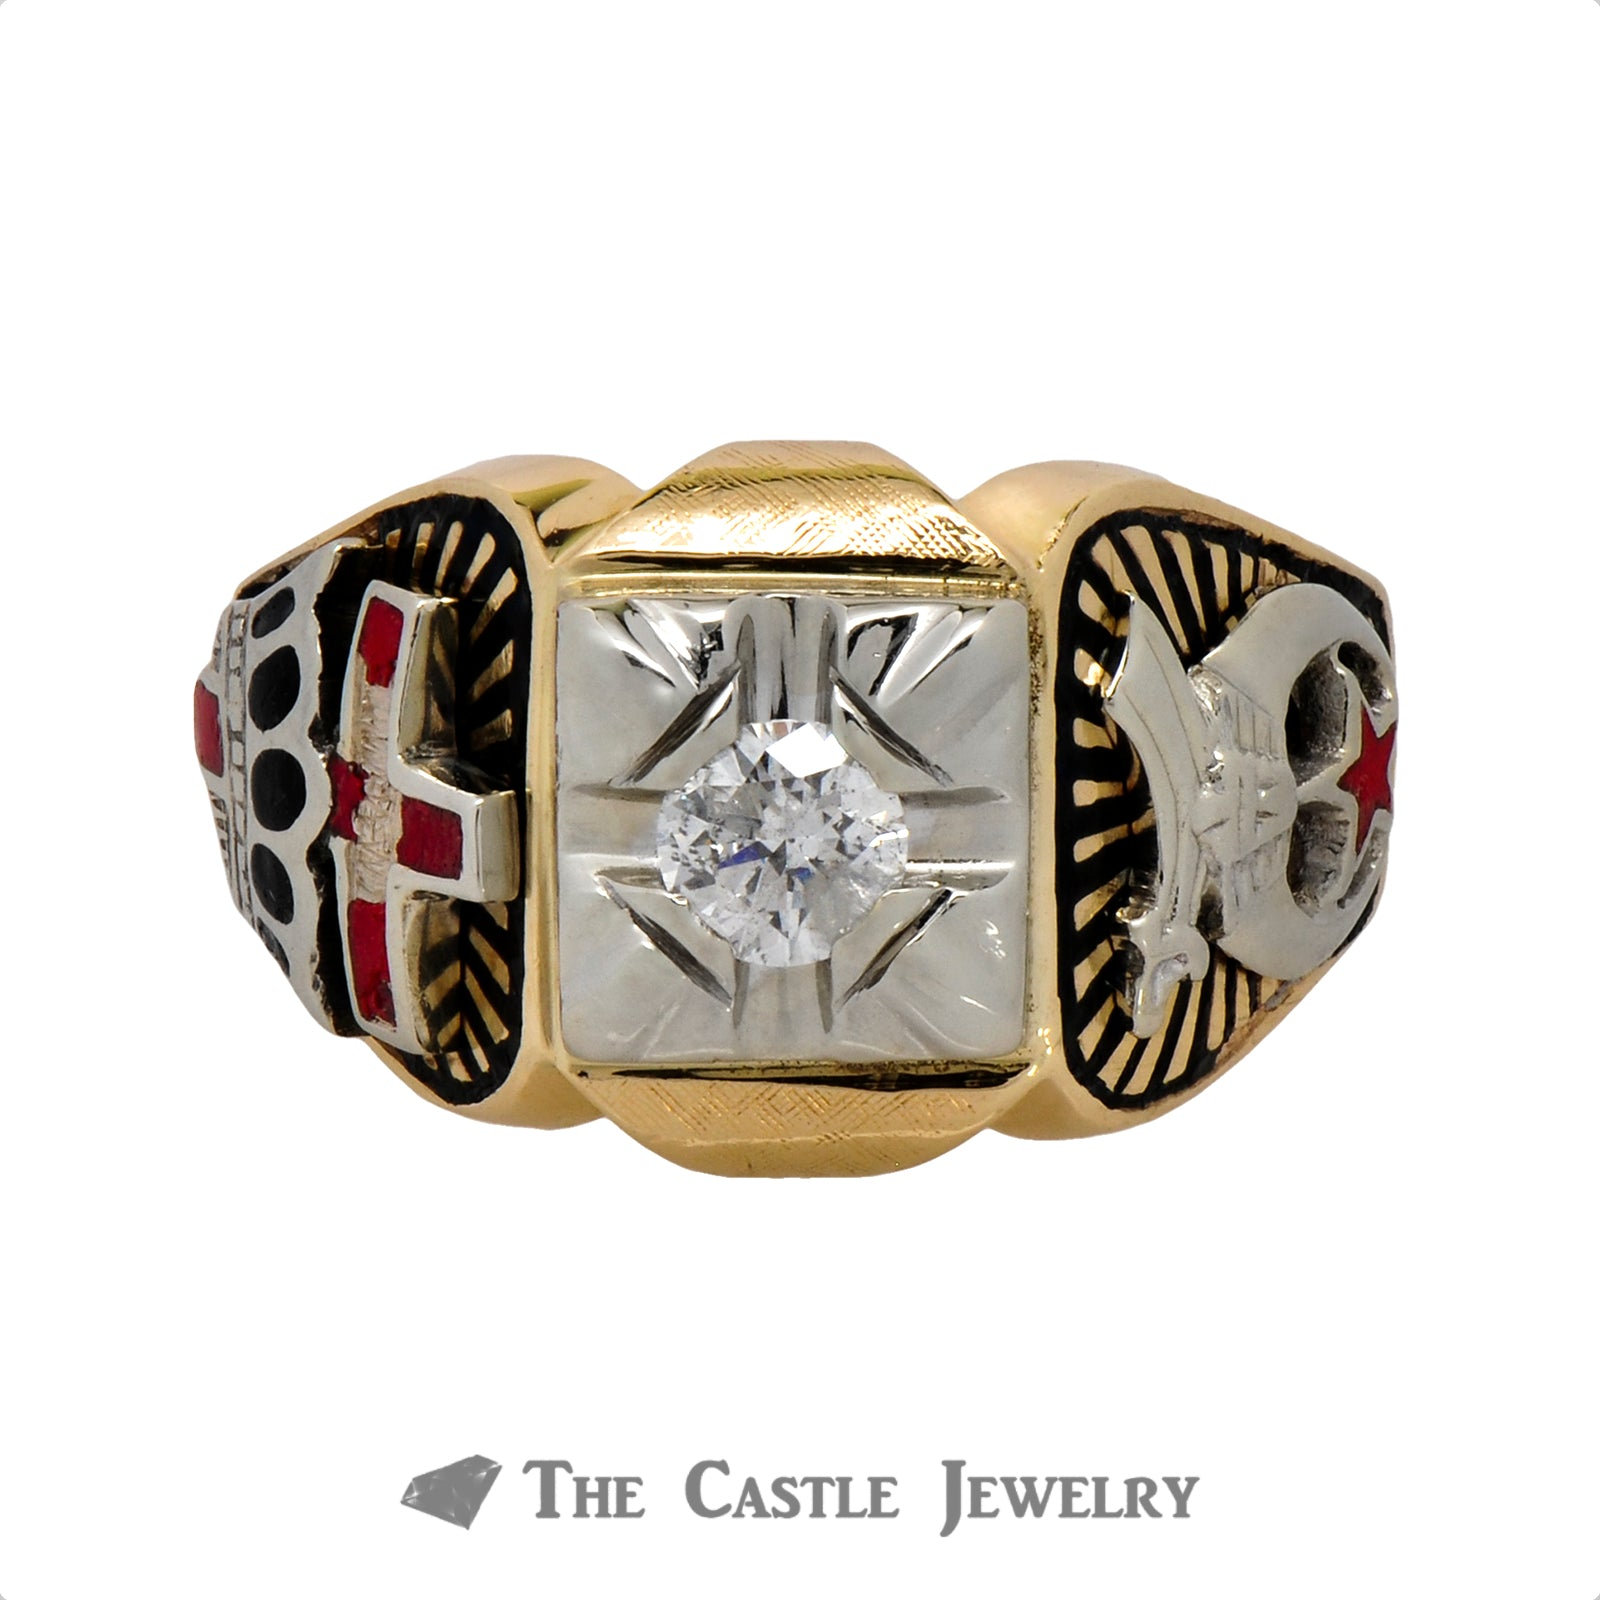 Ancient Order of the Nobles of the Mystic Shrine Ring with Diamond Solitaire